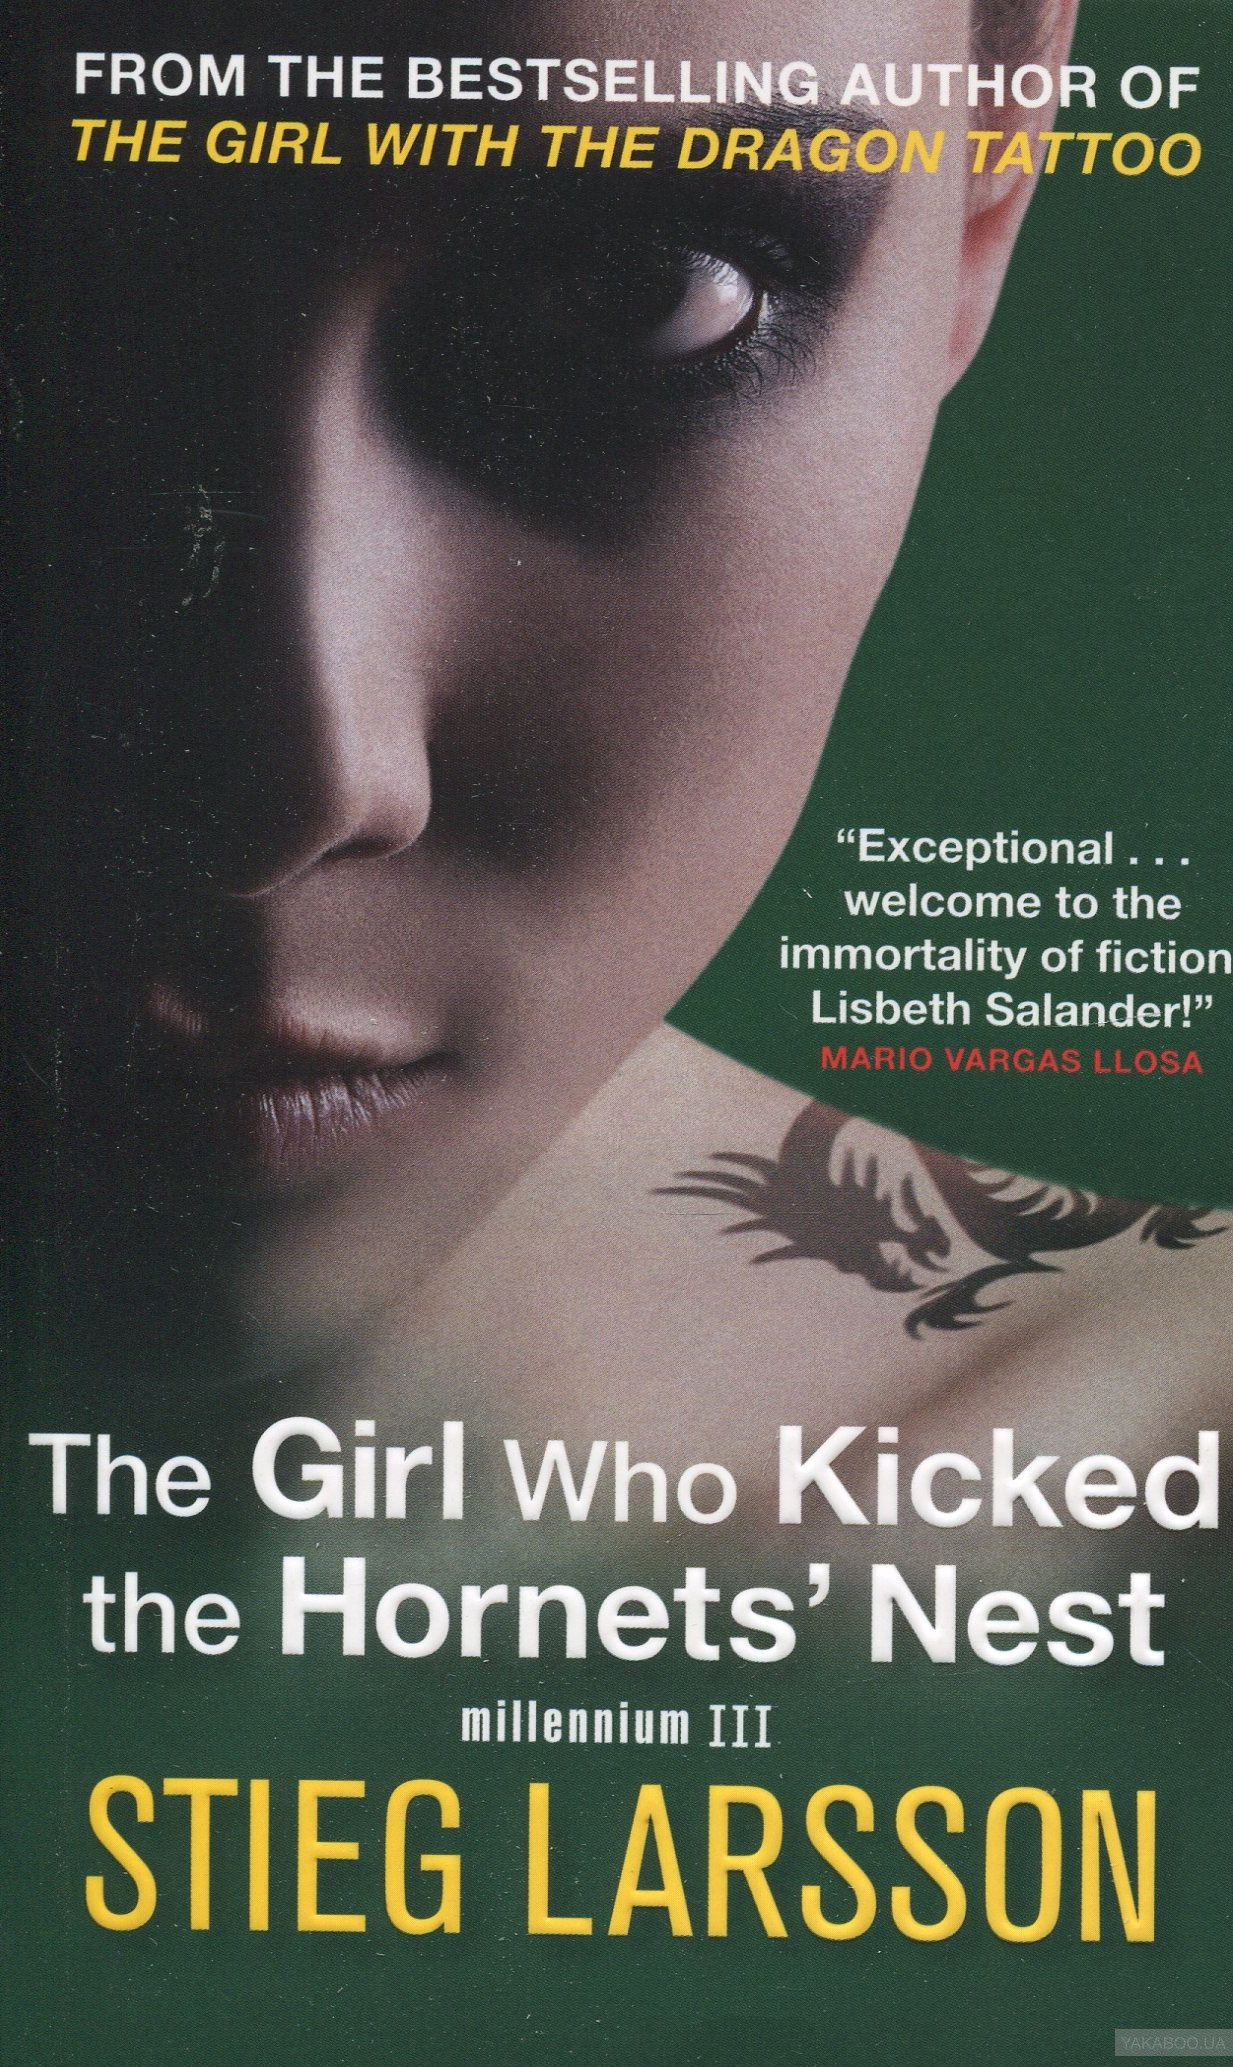 The Girl Who Kicked the Hornets' Nest